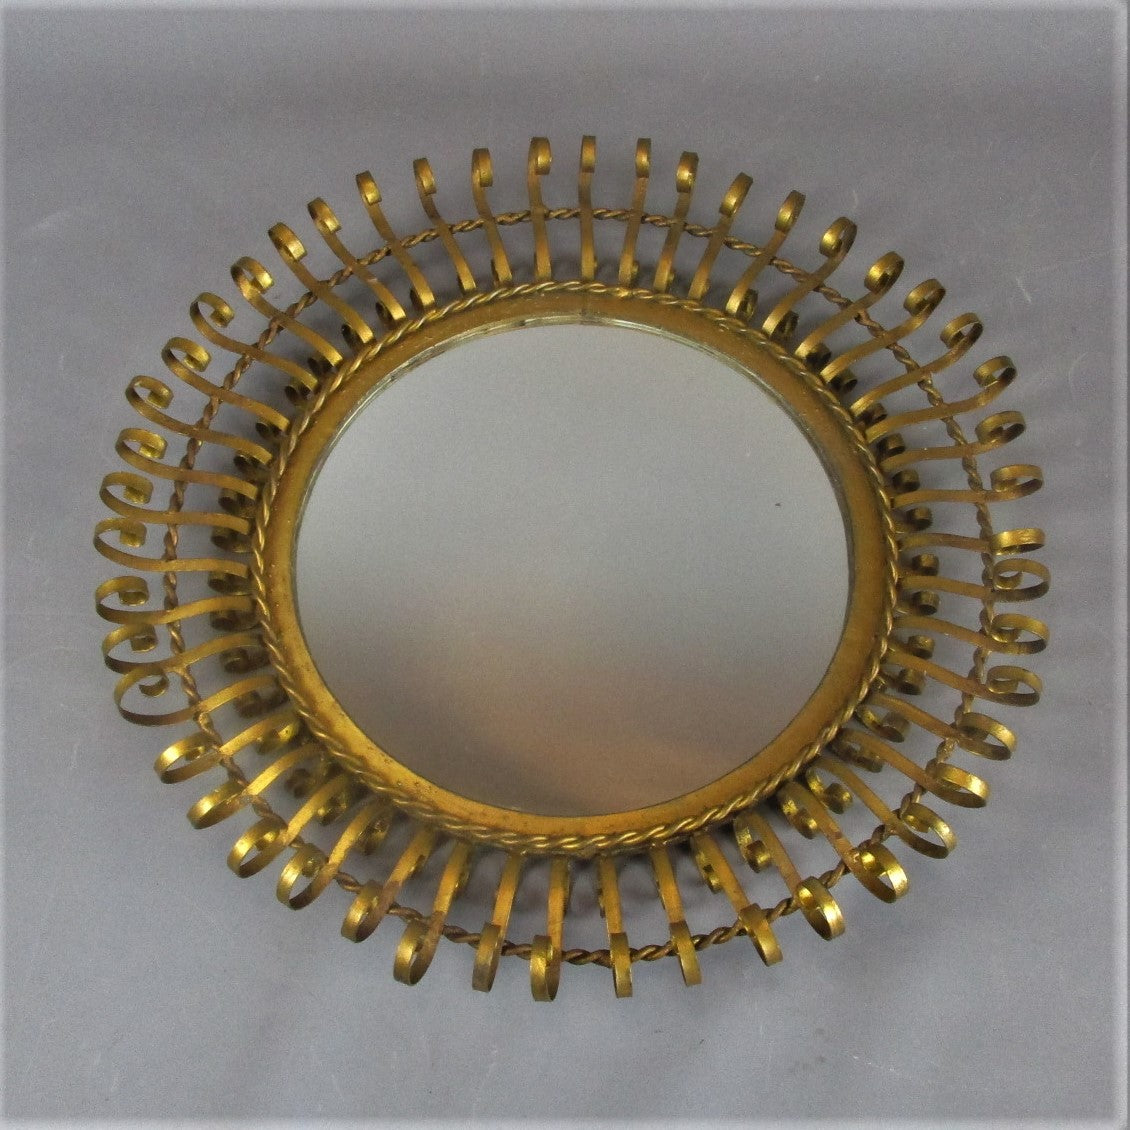 Bent Metal Starburst Mirror Vintage c1960